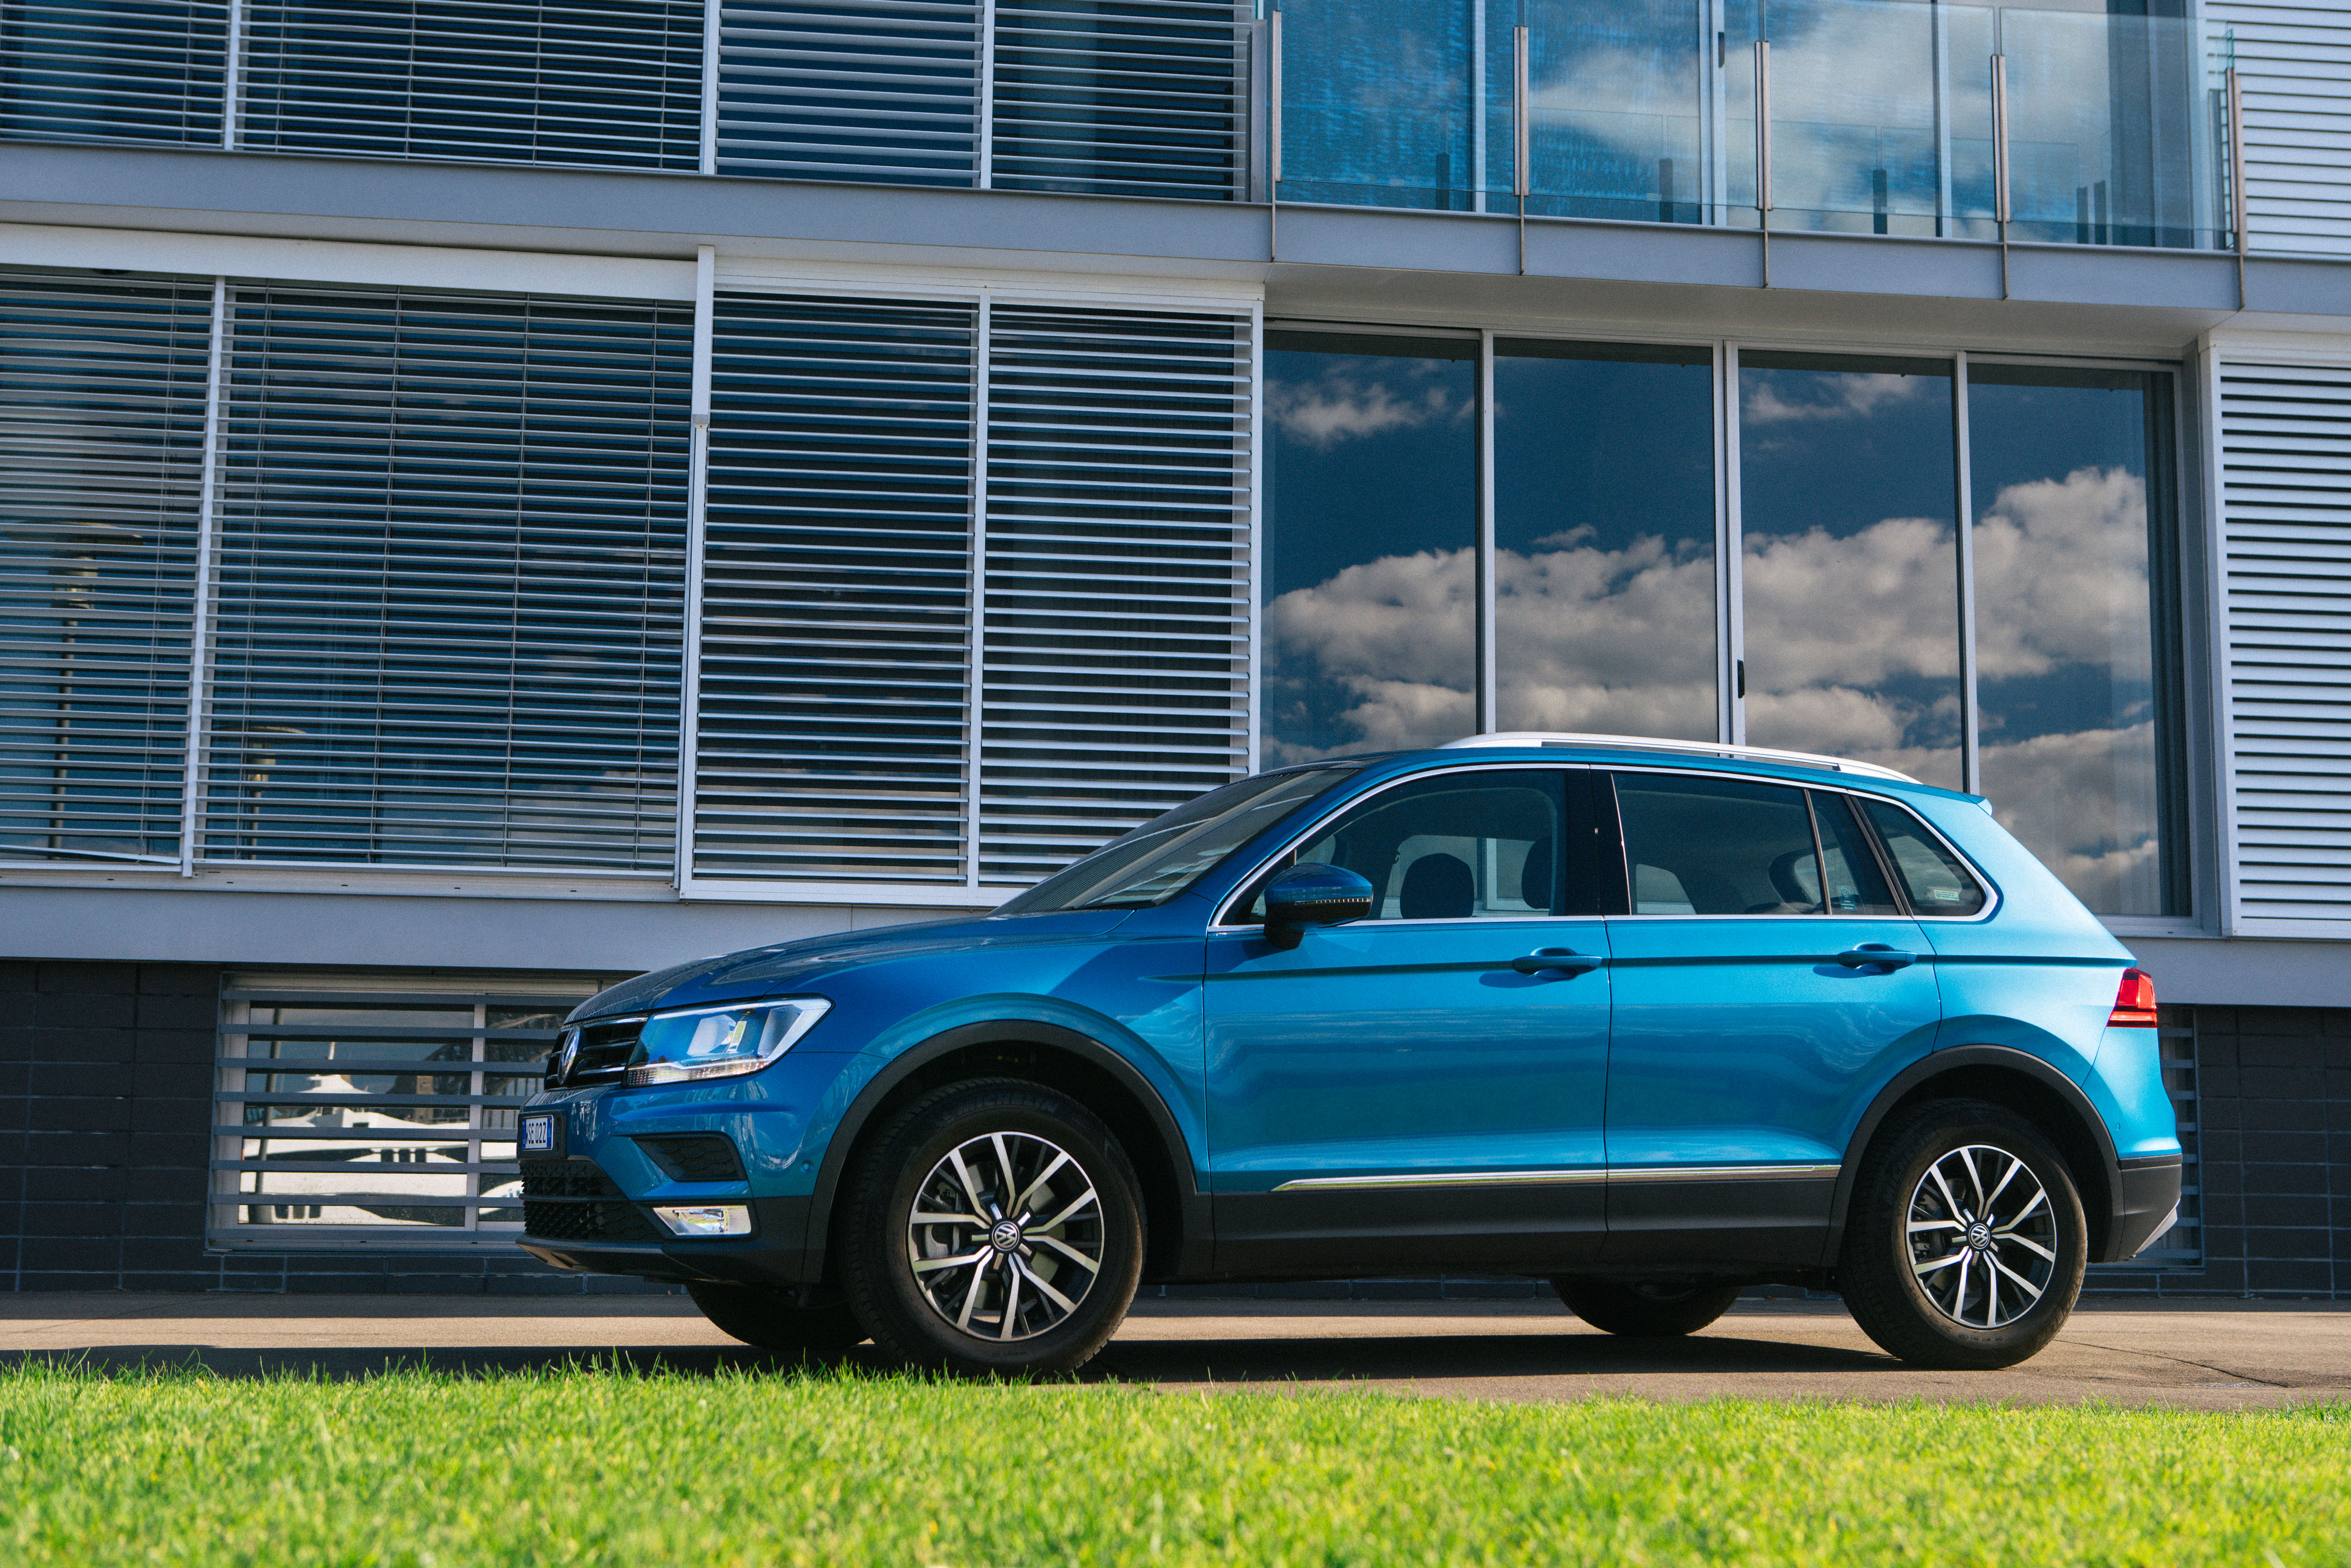 2019 VW Tiguan Release Date, Specs And Prices >> 2019 Volkswagen Tiguan Pricing And Specs Caradvice